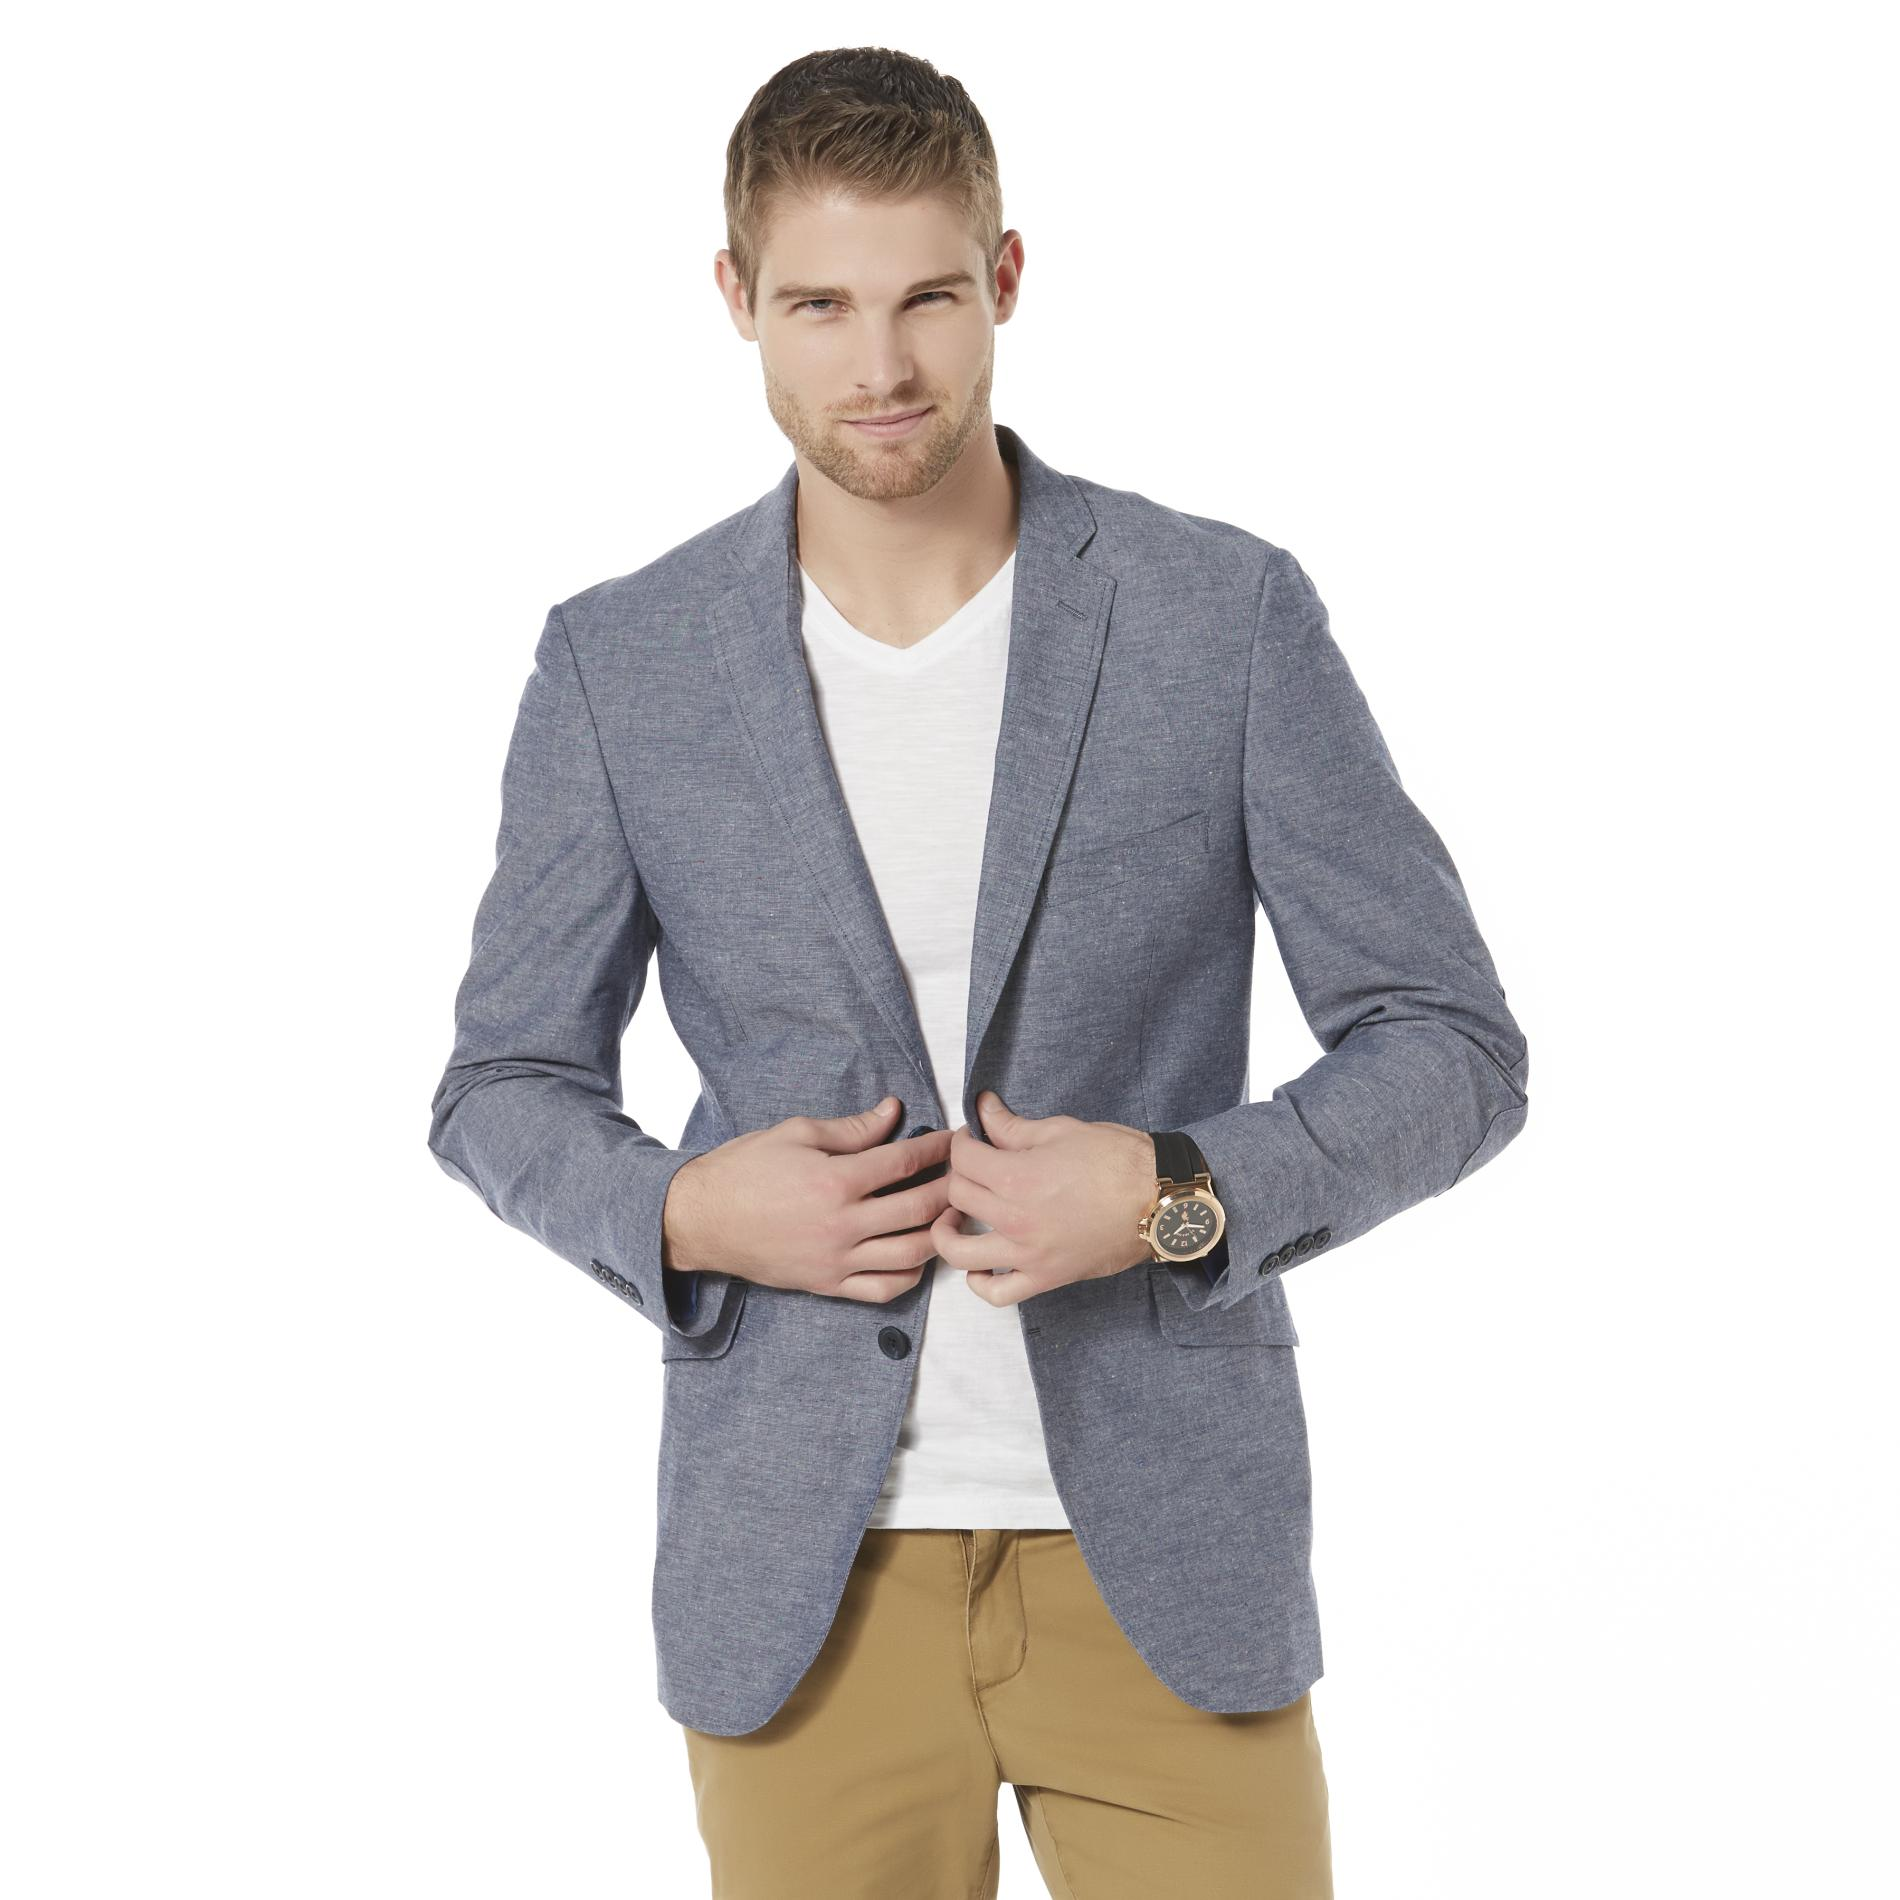 Men's Suits & Sport Coats - Sears